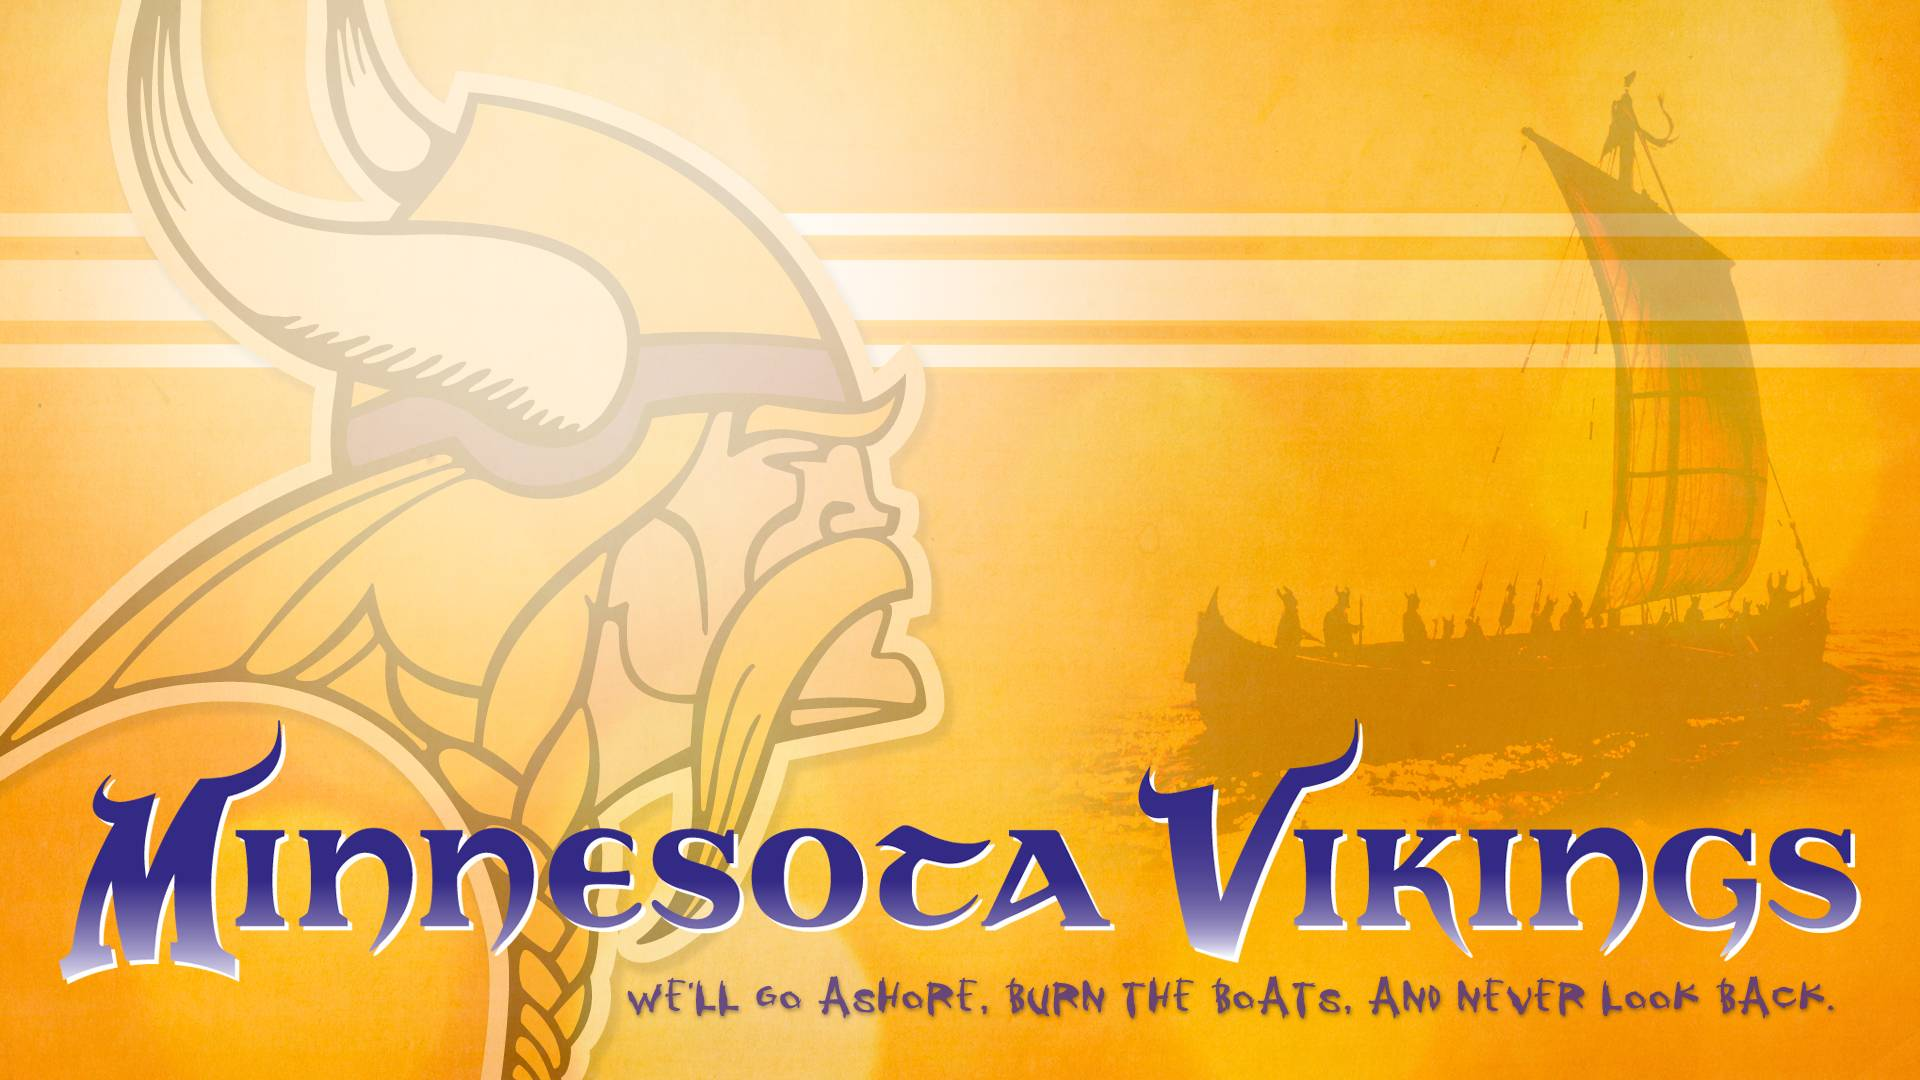 Nfl Wallpaper Hd Vikings Logo Wallpapers Wallpaper Cave